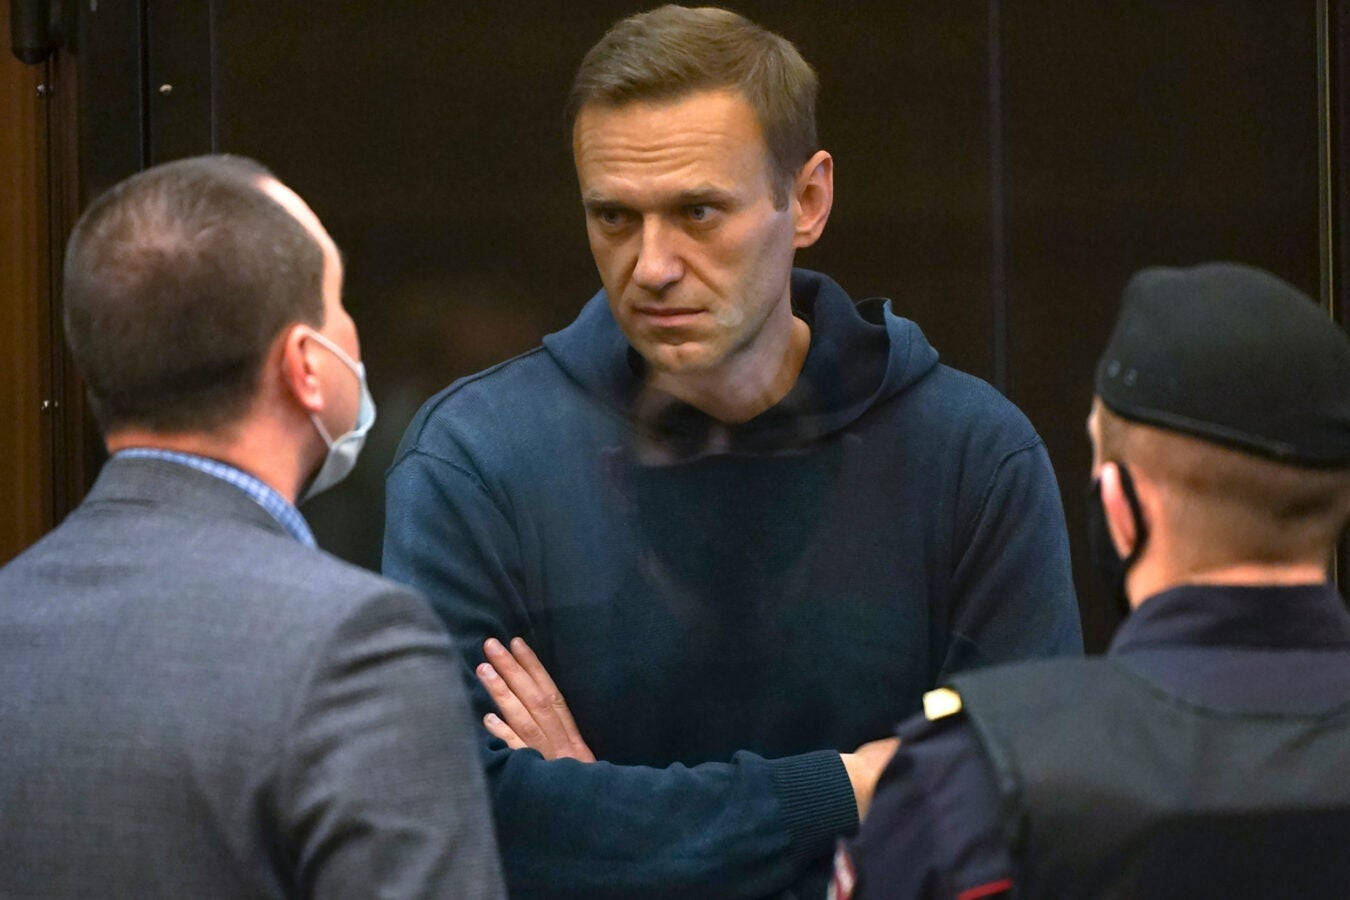 Alexei Navalny talks to one of his lawyers, left, while standing in the cage.